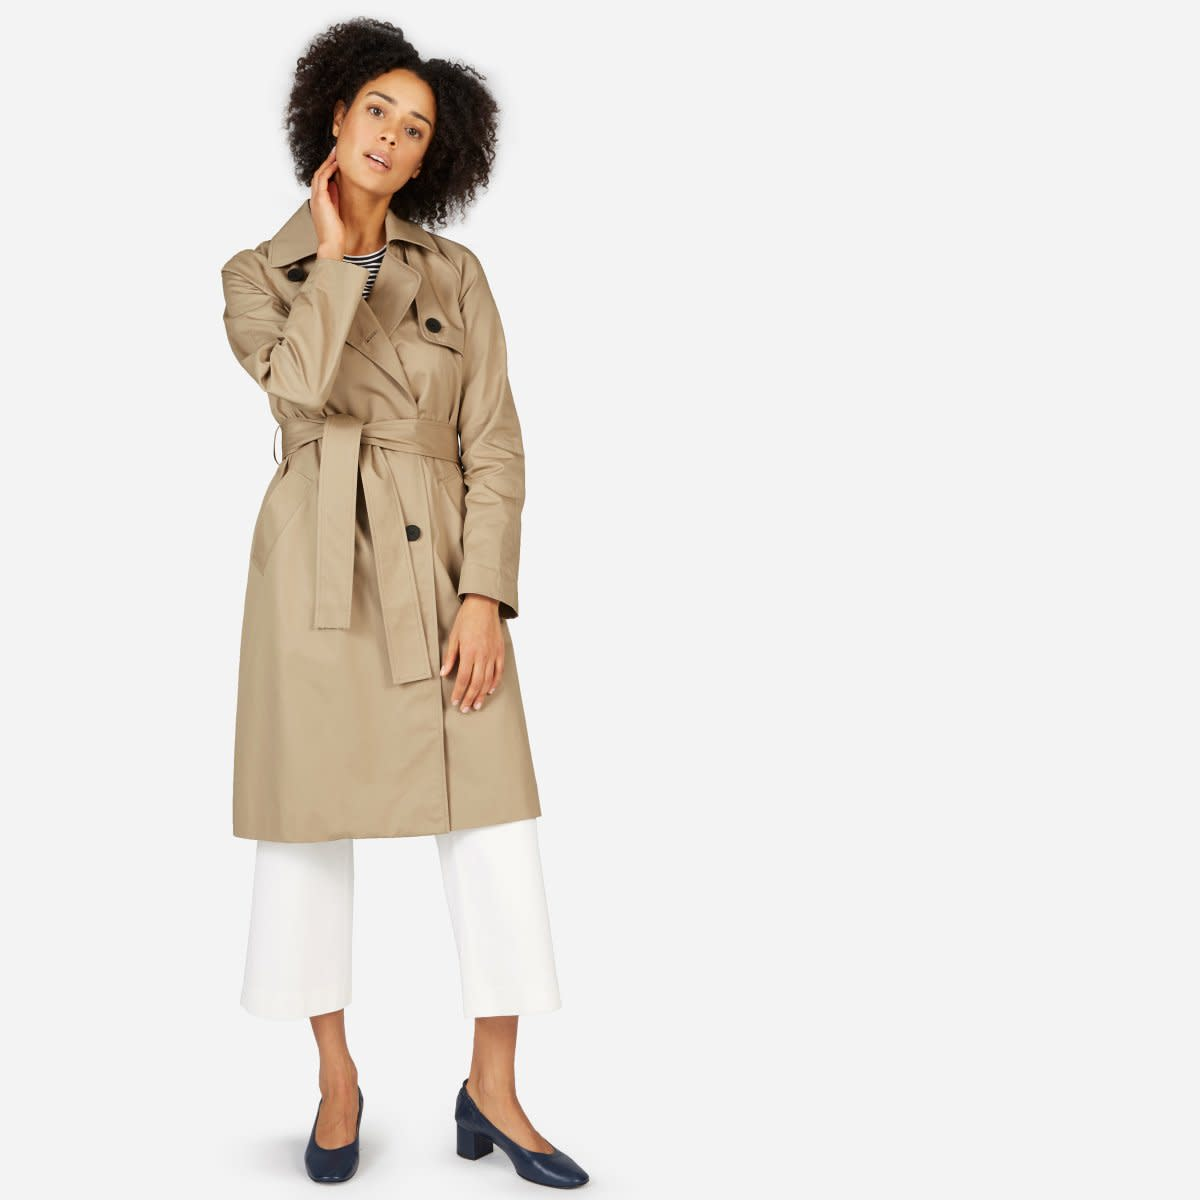 Everlane The Drape Trench Coat, $138, available here.